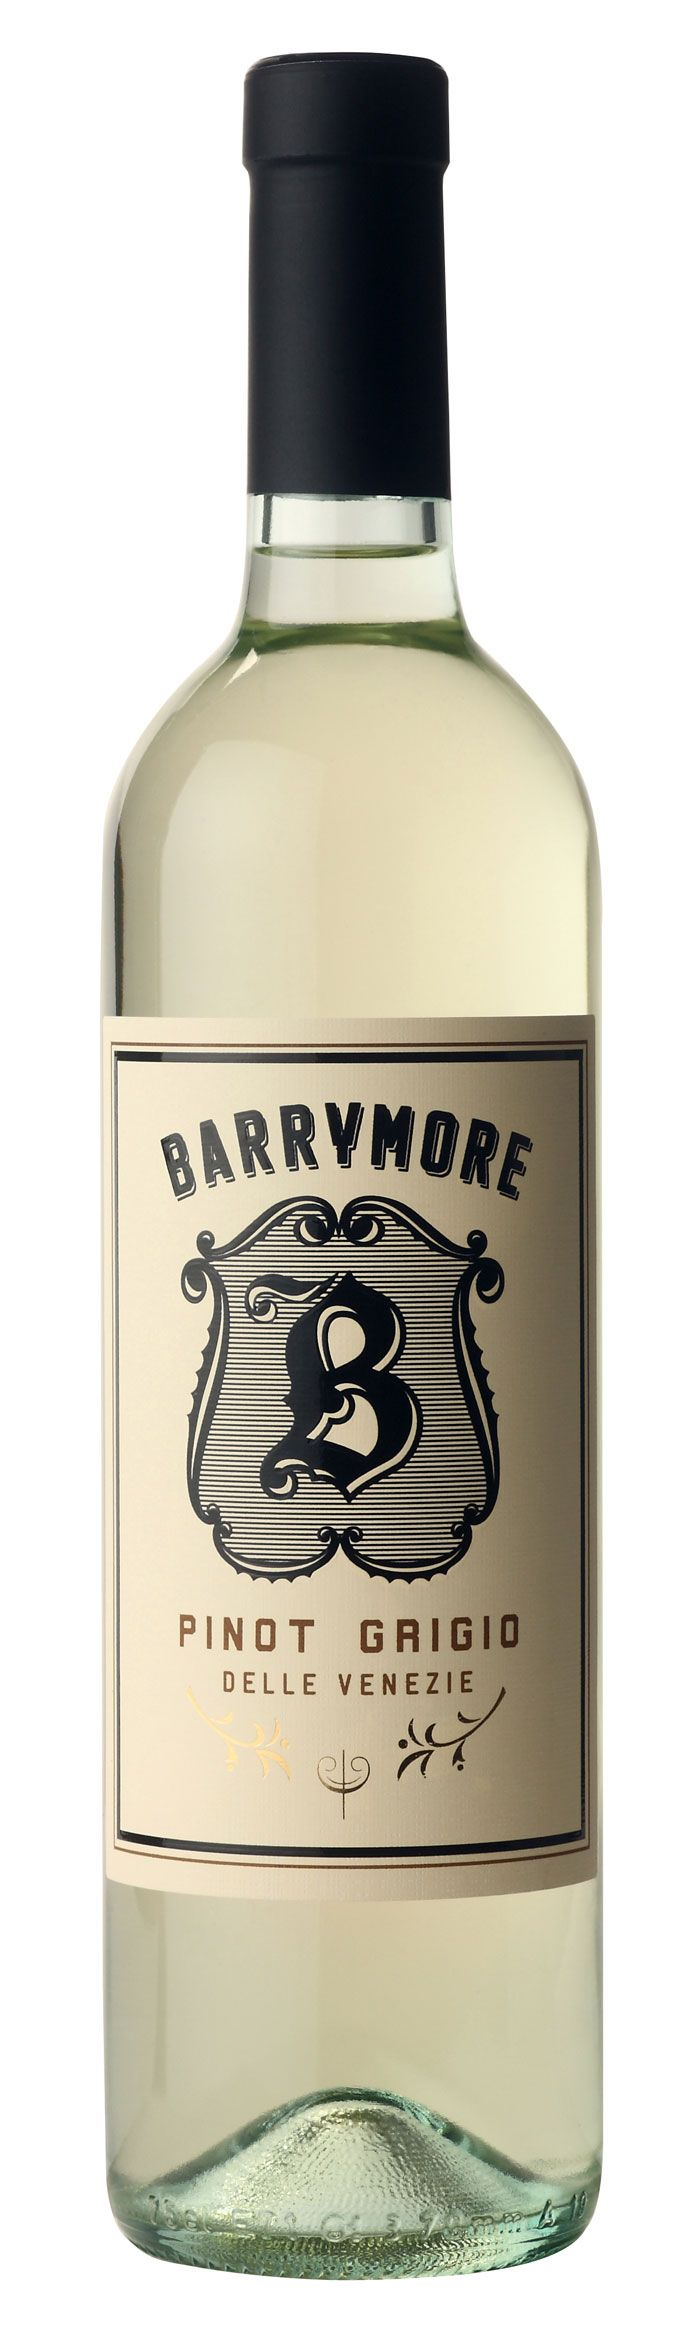 Drew Barrymore has a wine, and Shepard Fairey designed the label. Maybe it's time to upgrade from Franzia.: Barrymore S Crest Logo, Wine Labels, Barrymore Wine Delicious, 4 30 12 Lbarrymore2 1Eyejack, Drew, 700 2 333, Labels Packaging, 4 30 12 Lbarrymore2 Jpg